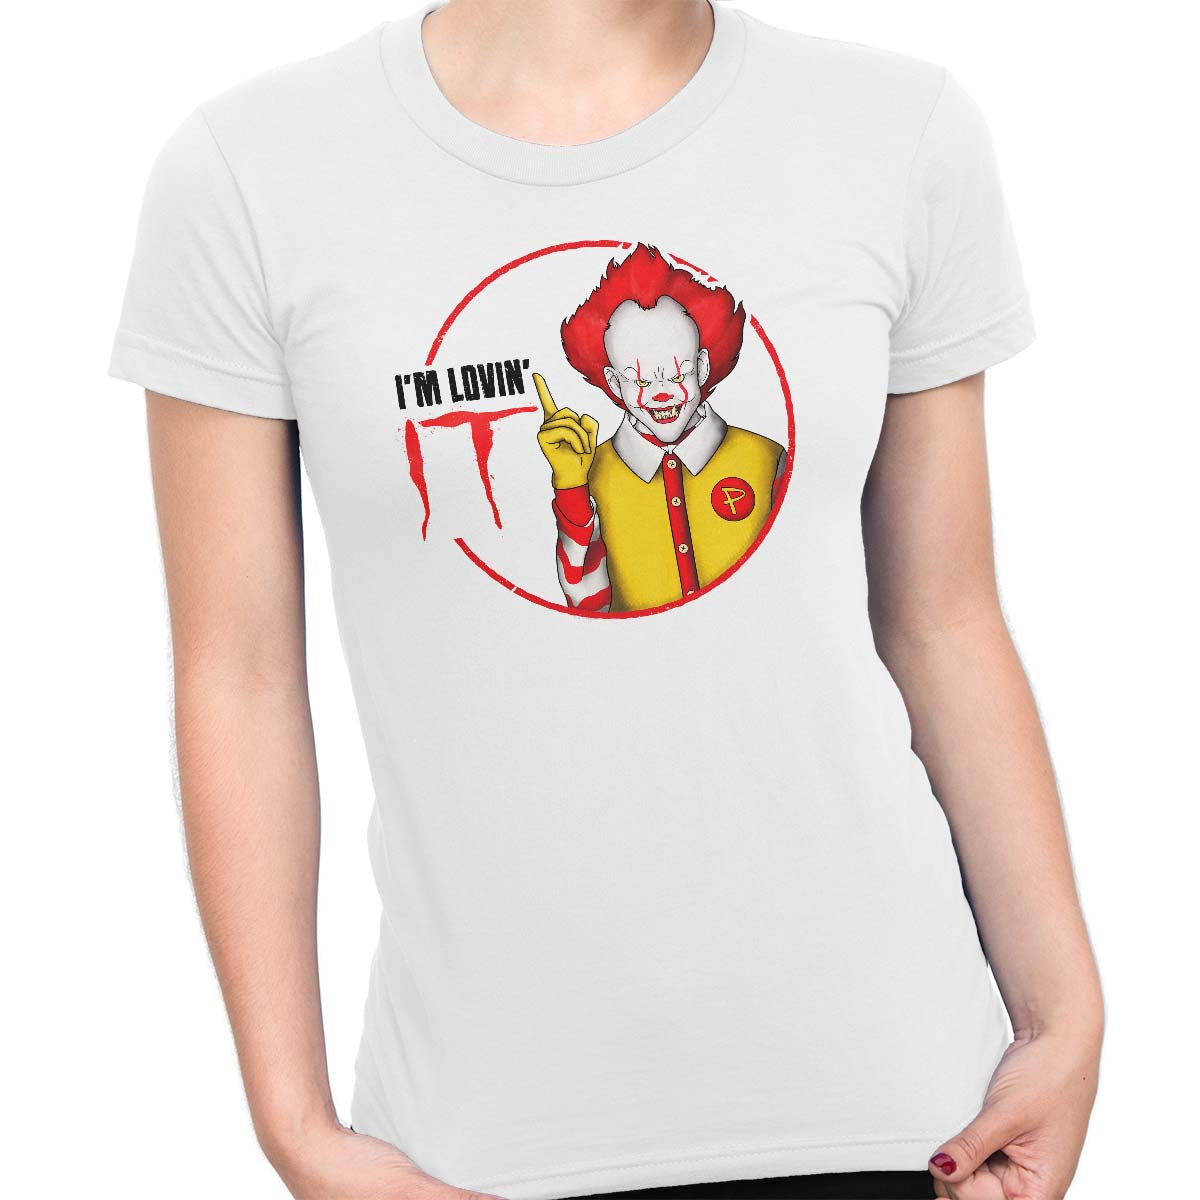 pennywise funny t-shirt white